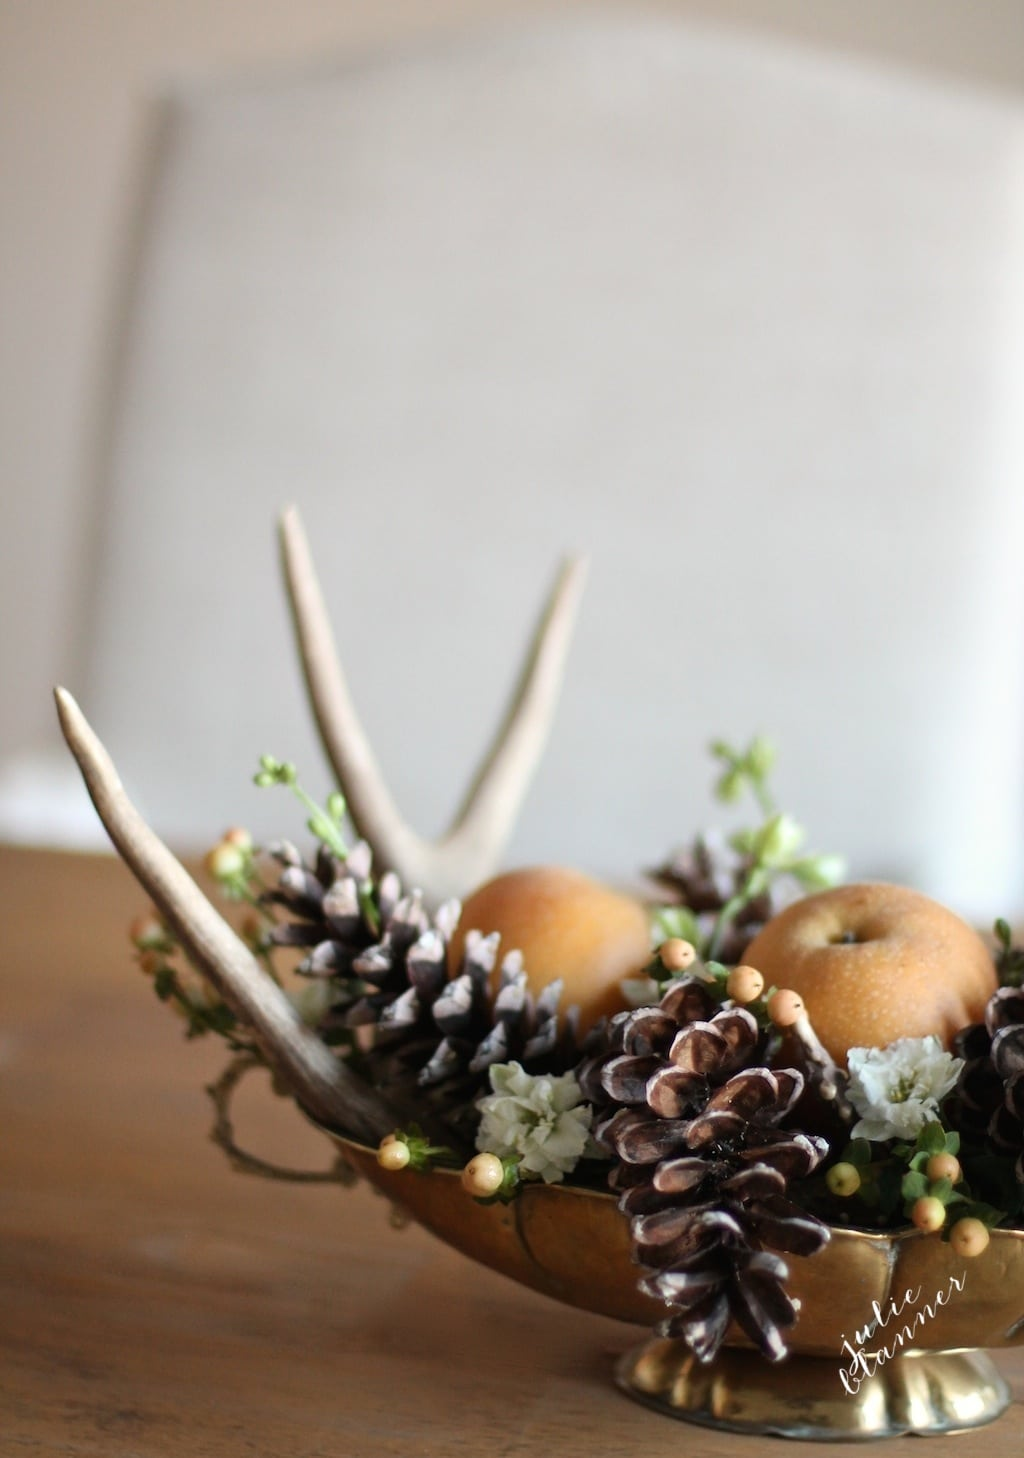 Thanksgiving Decorations - 5 Minute Thanksgiving Centerpiece